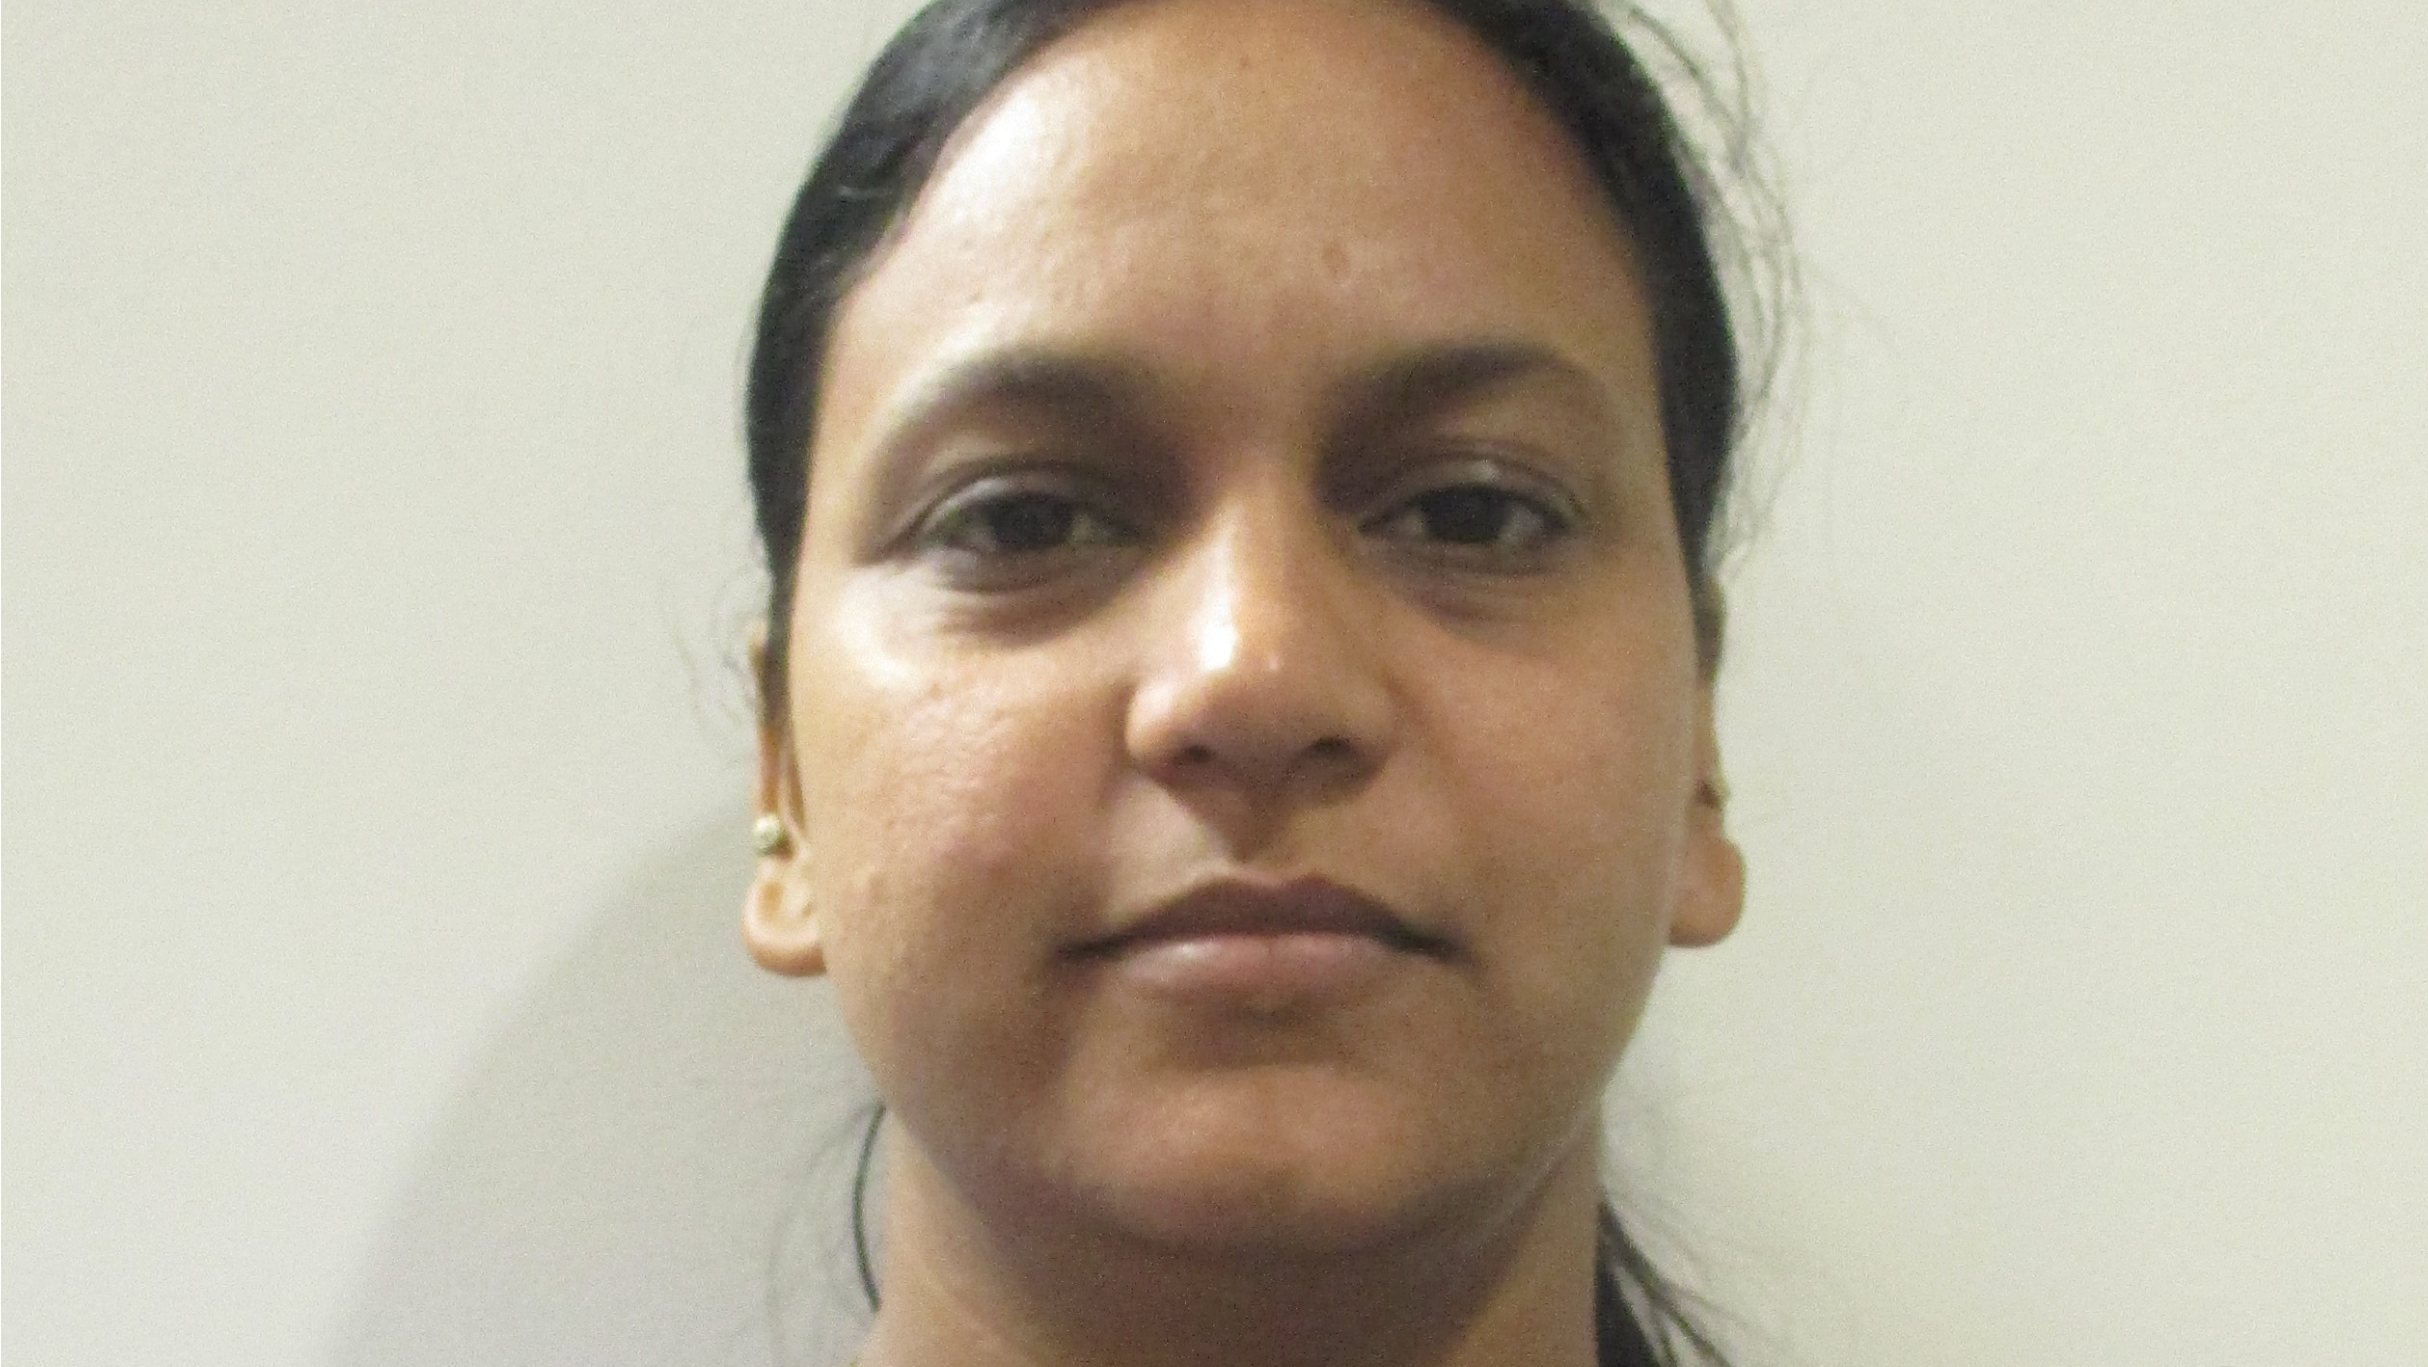 Jaspal Kaur Virk - Diploma in Networks and System Administration (Level 7)